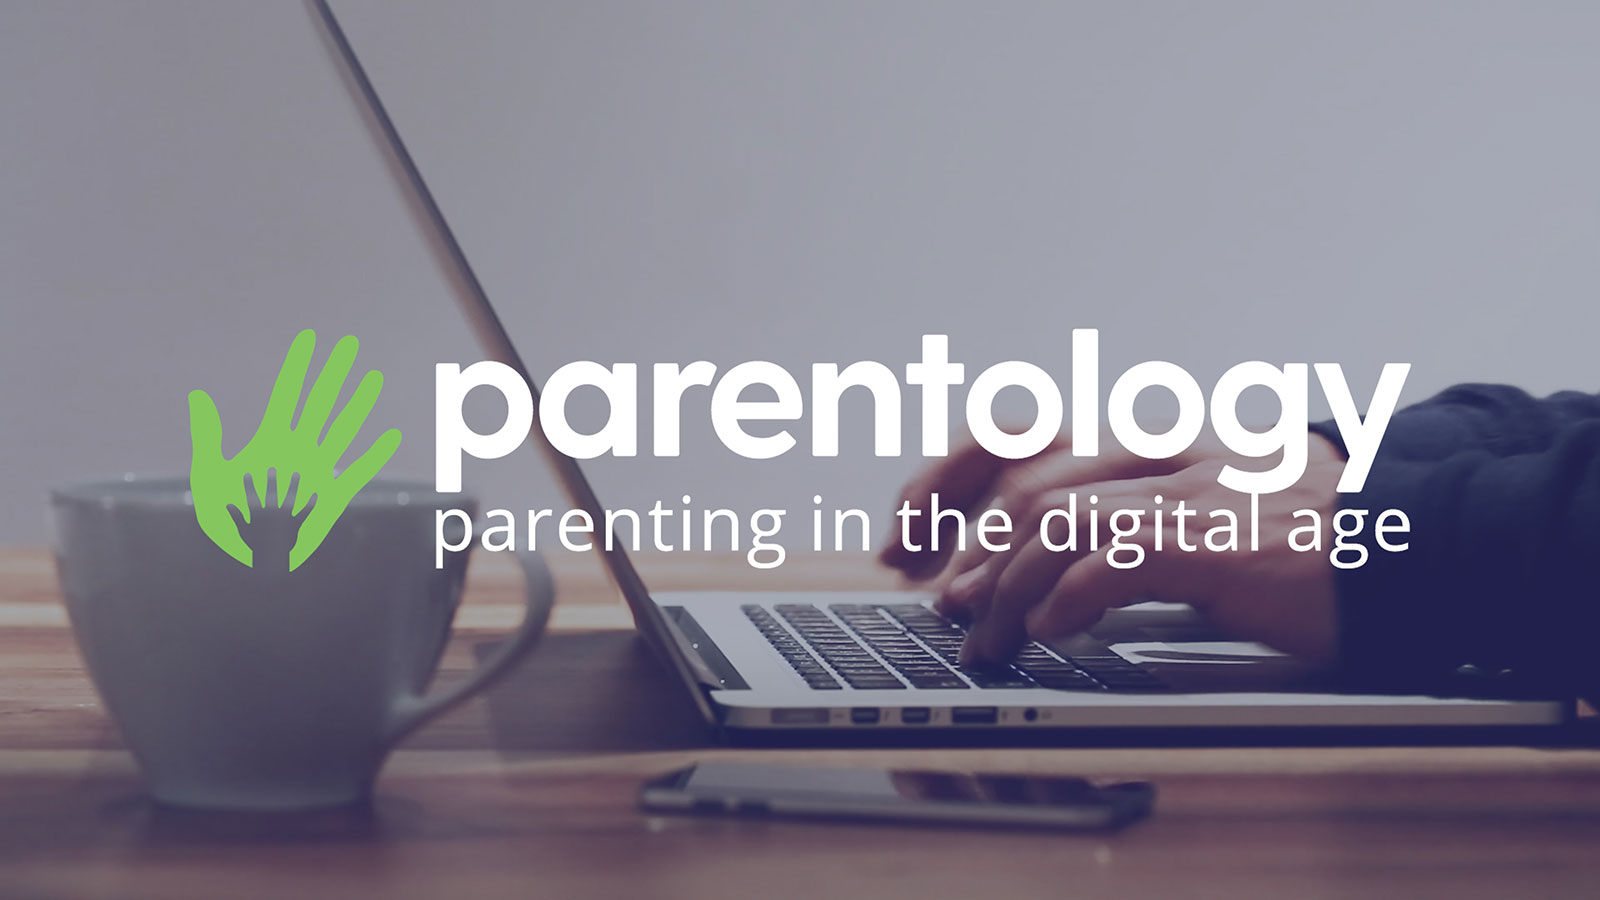 Best Parenting Website in 2021 for New Parents, Pregnant Moms, or Couples Working On It